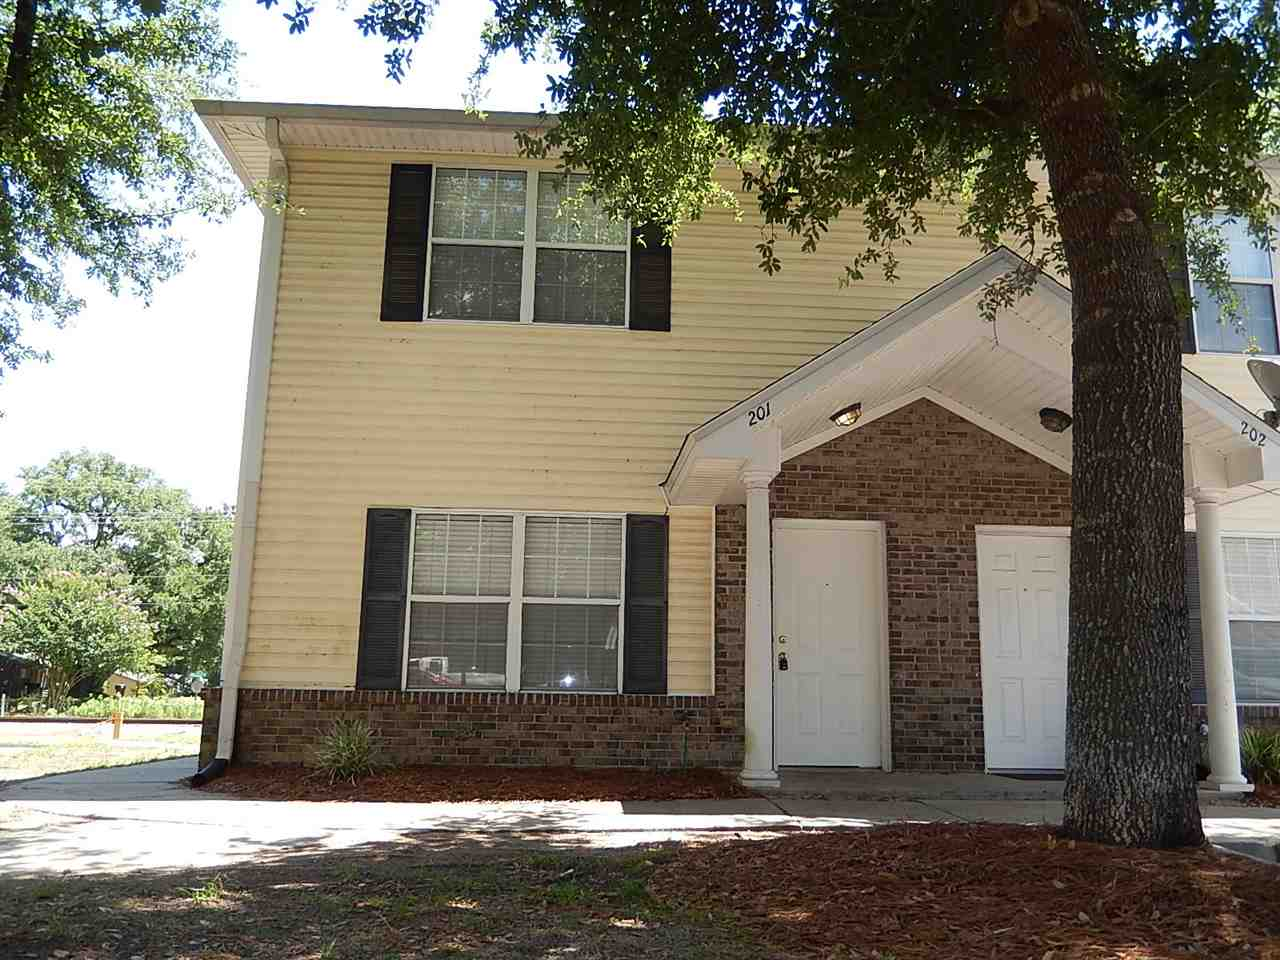 Photo of 3100 Dian Road #201, Tallahassee, FL 32304